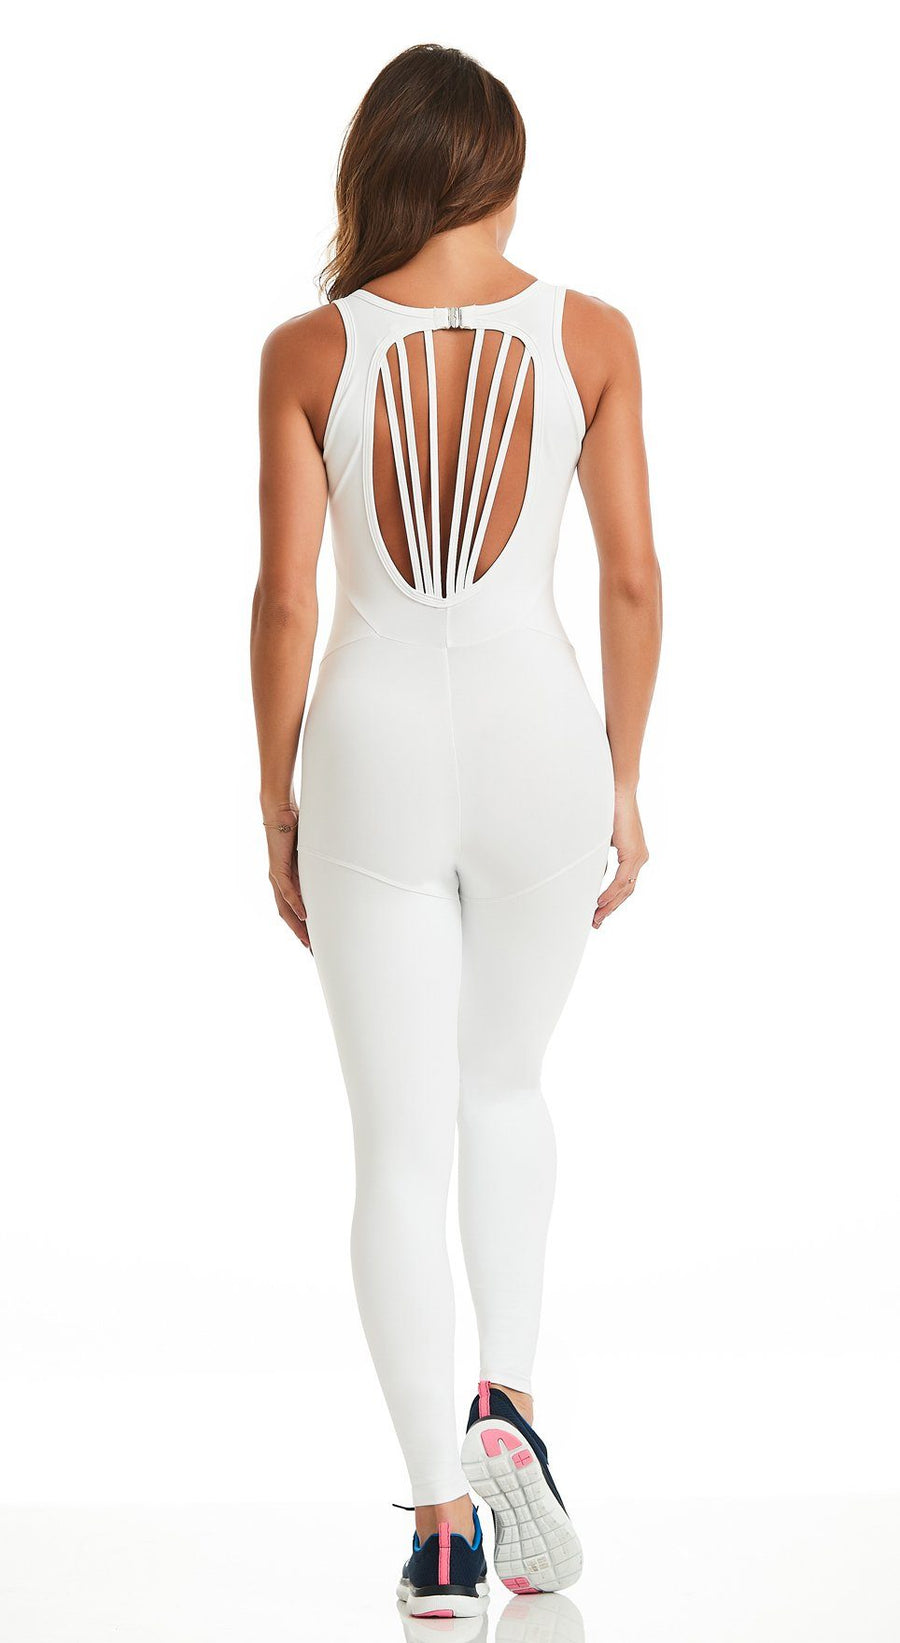 Brazilian Workout Jumpsuit - Intense White